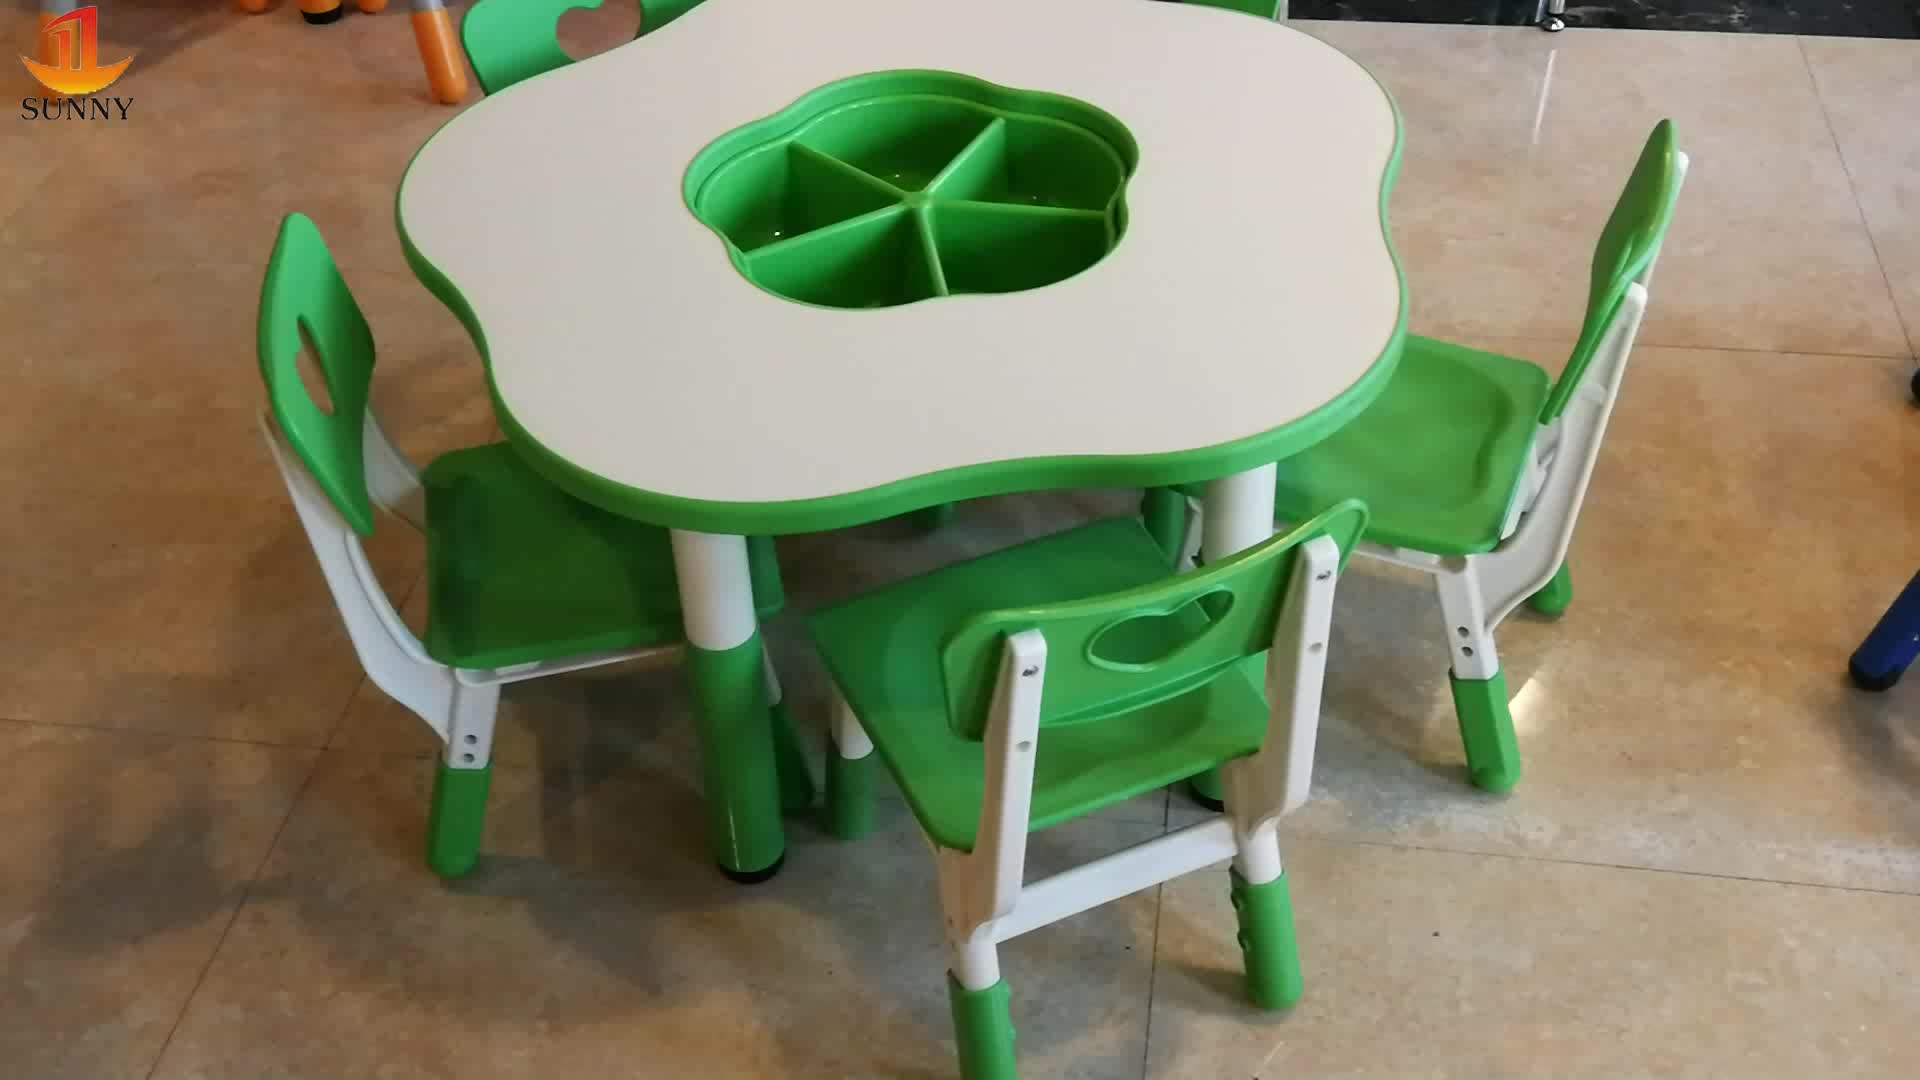 Kids Wood Table And Chairs Kids Party Tables And Chairs Kids Study Table Chair Kids Writing Table And Chair Buy Kids Furniture Table And Chairs Kids Table And Chairs Used Kids